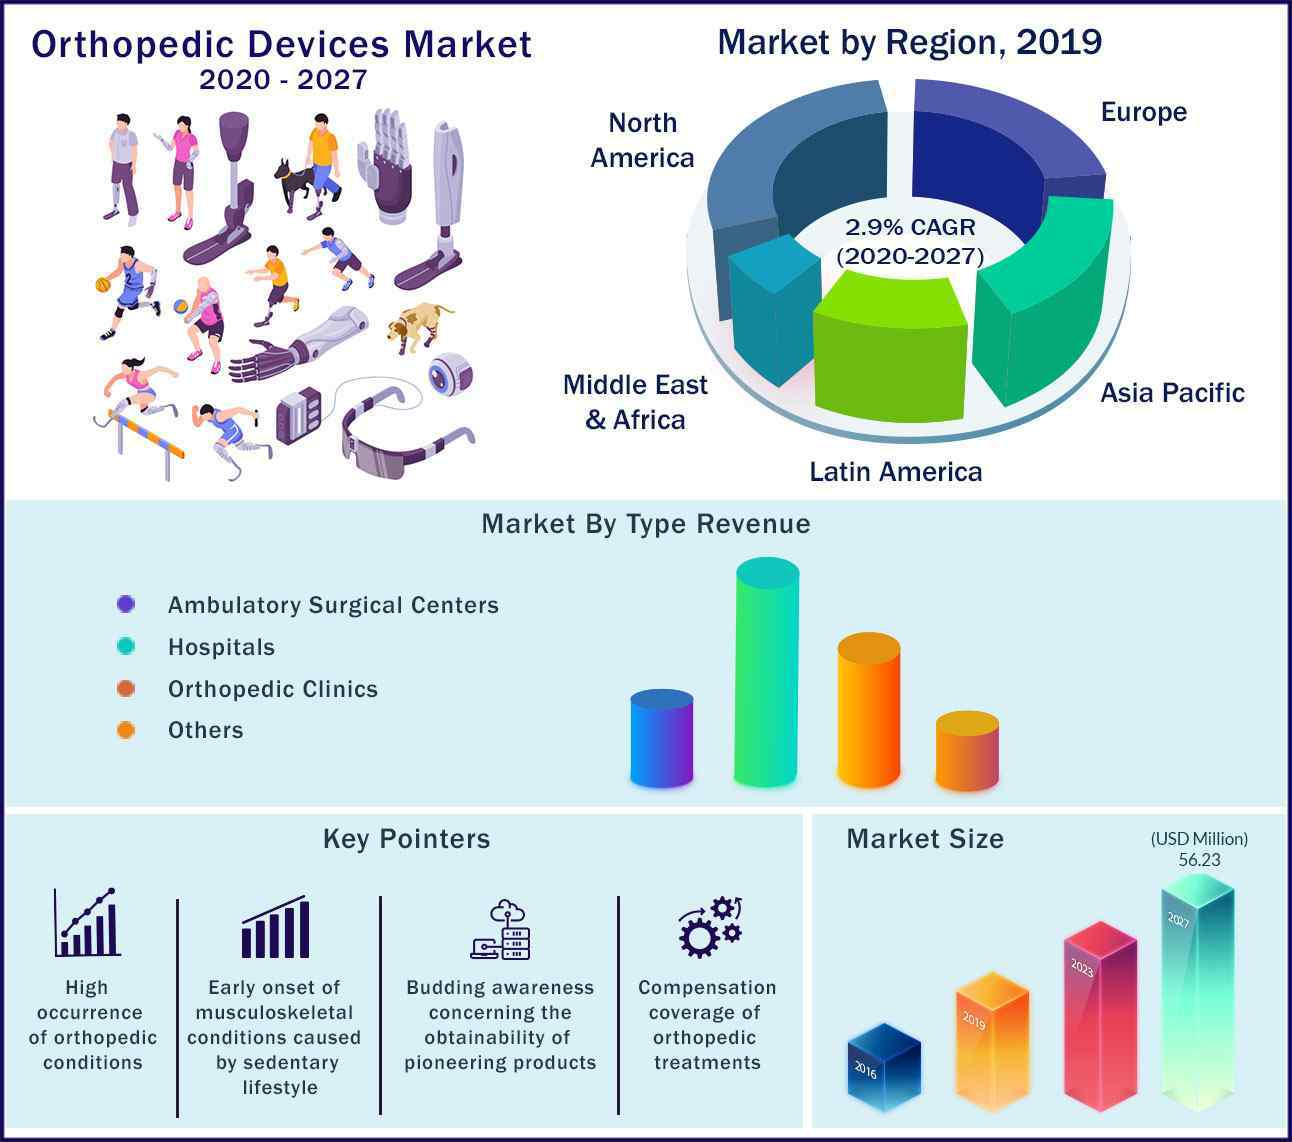 Global Orthopedic Devices Market 2020 to 2027